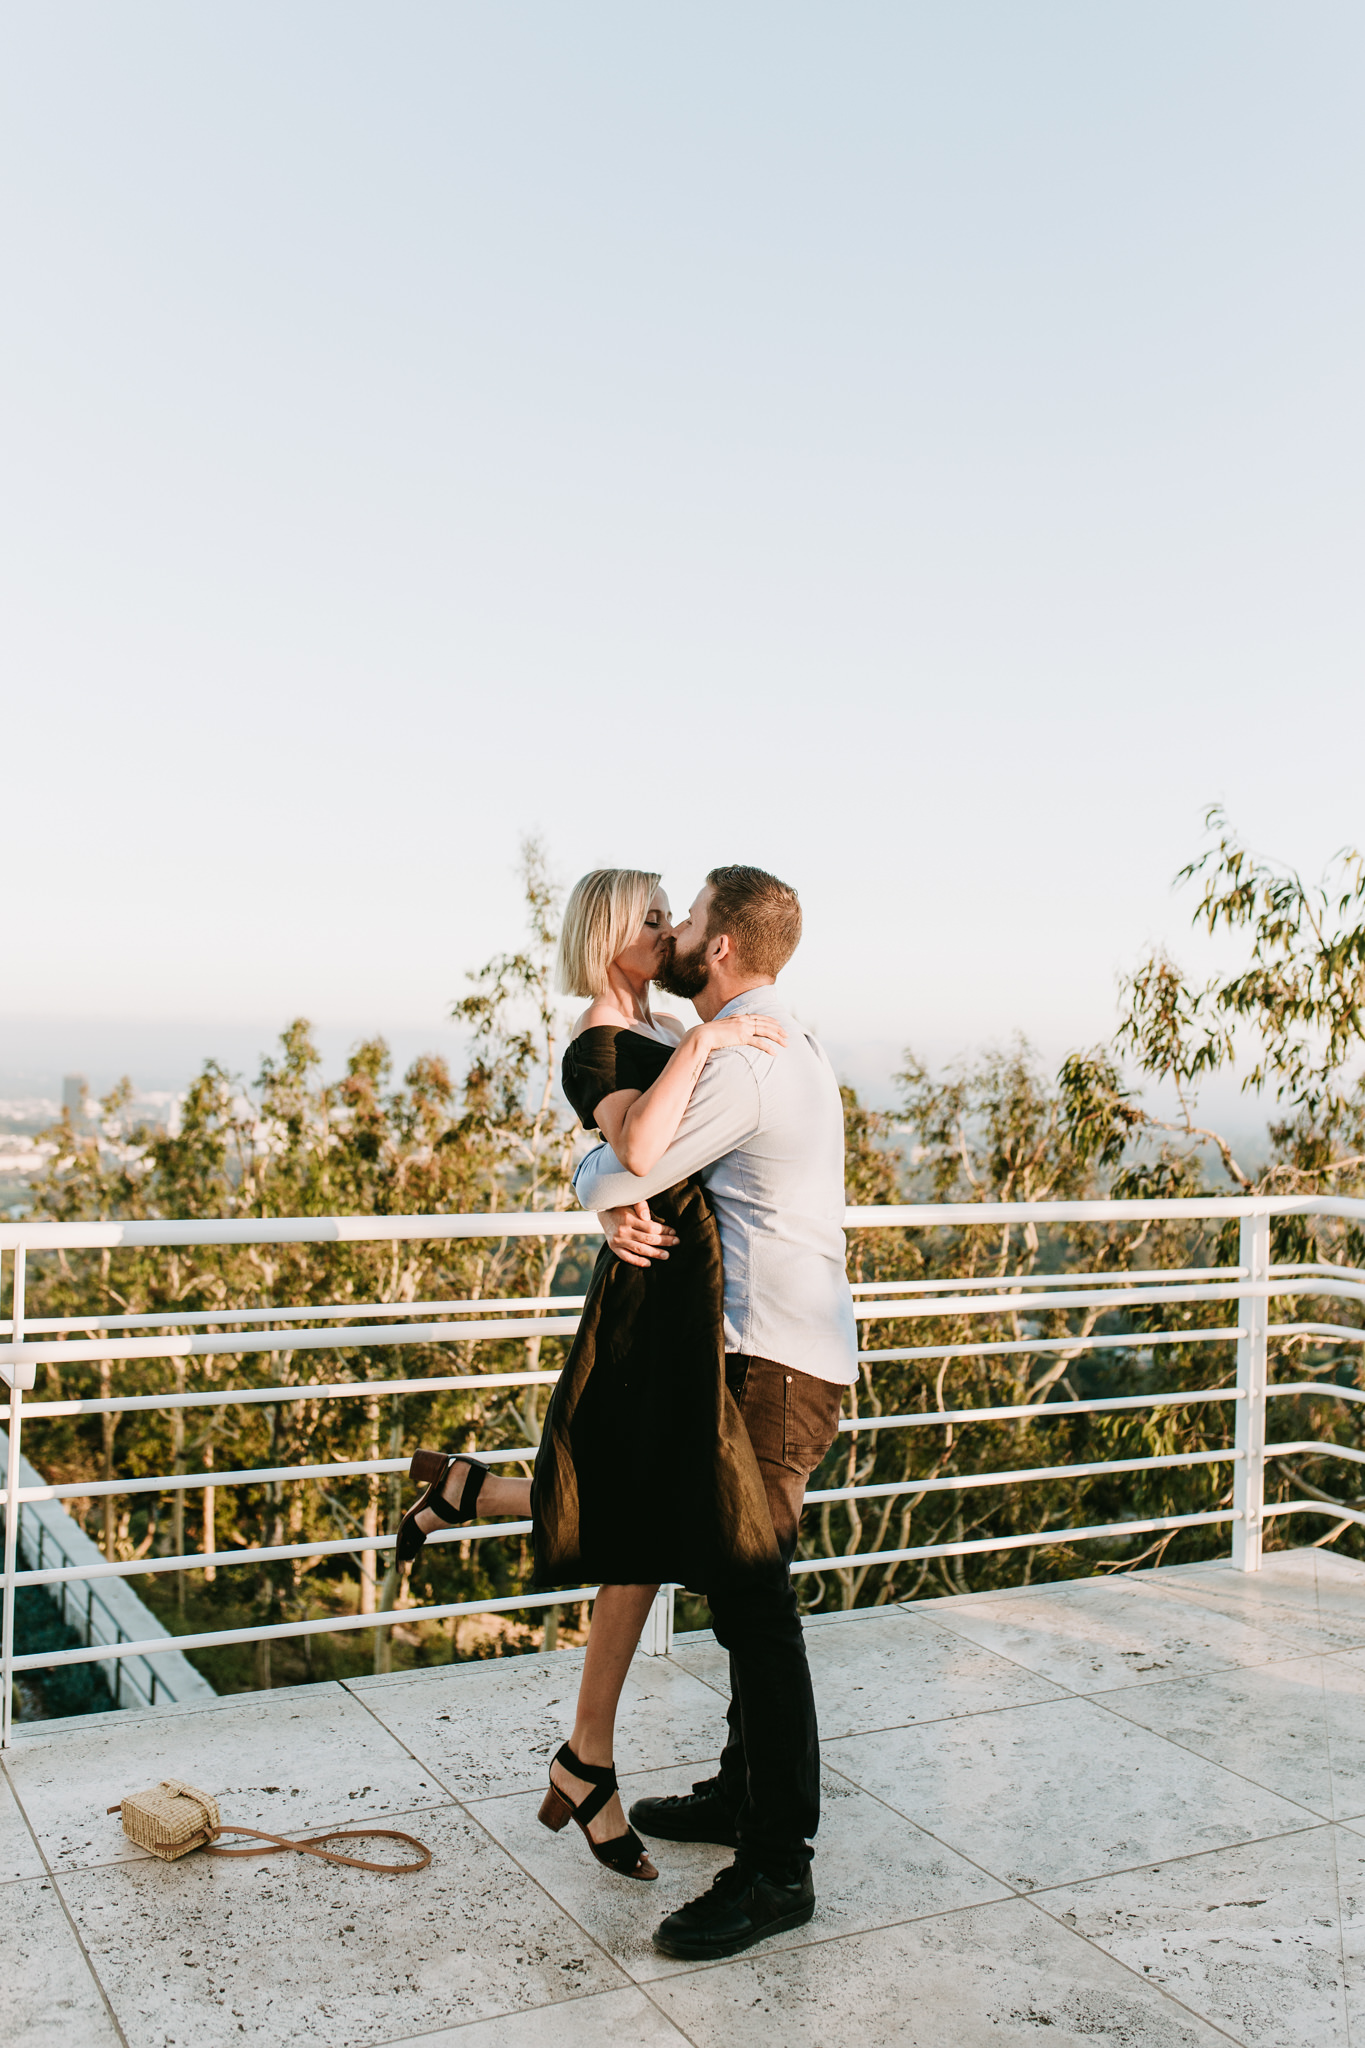 Sam & Tanner - The Getty Center, Los Angeles, CA - Sunset Proposal